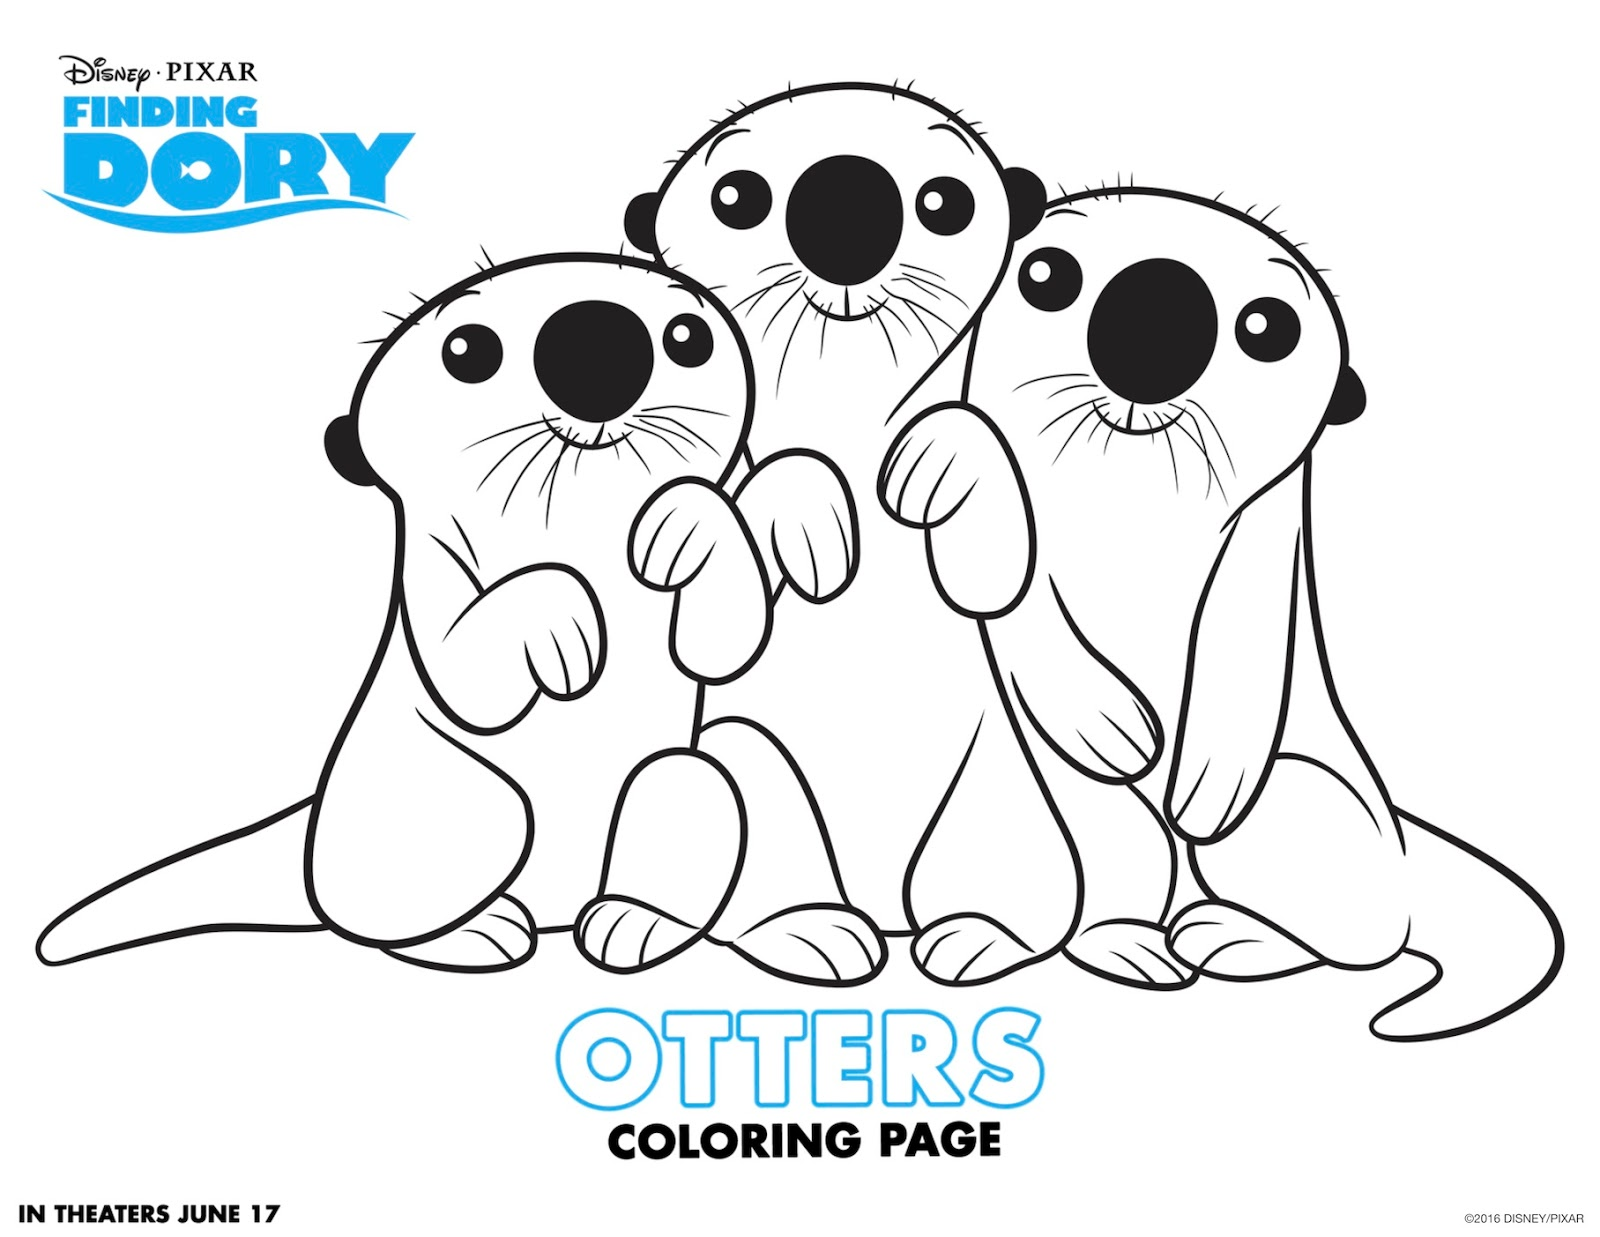 Free Printable Finding Dory Activity Sheets